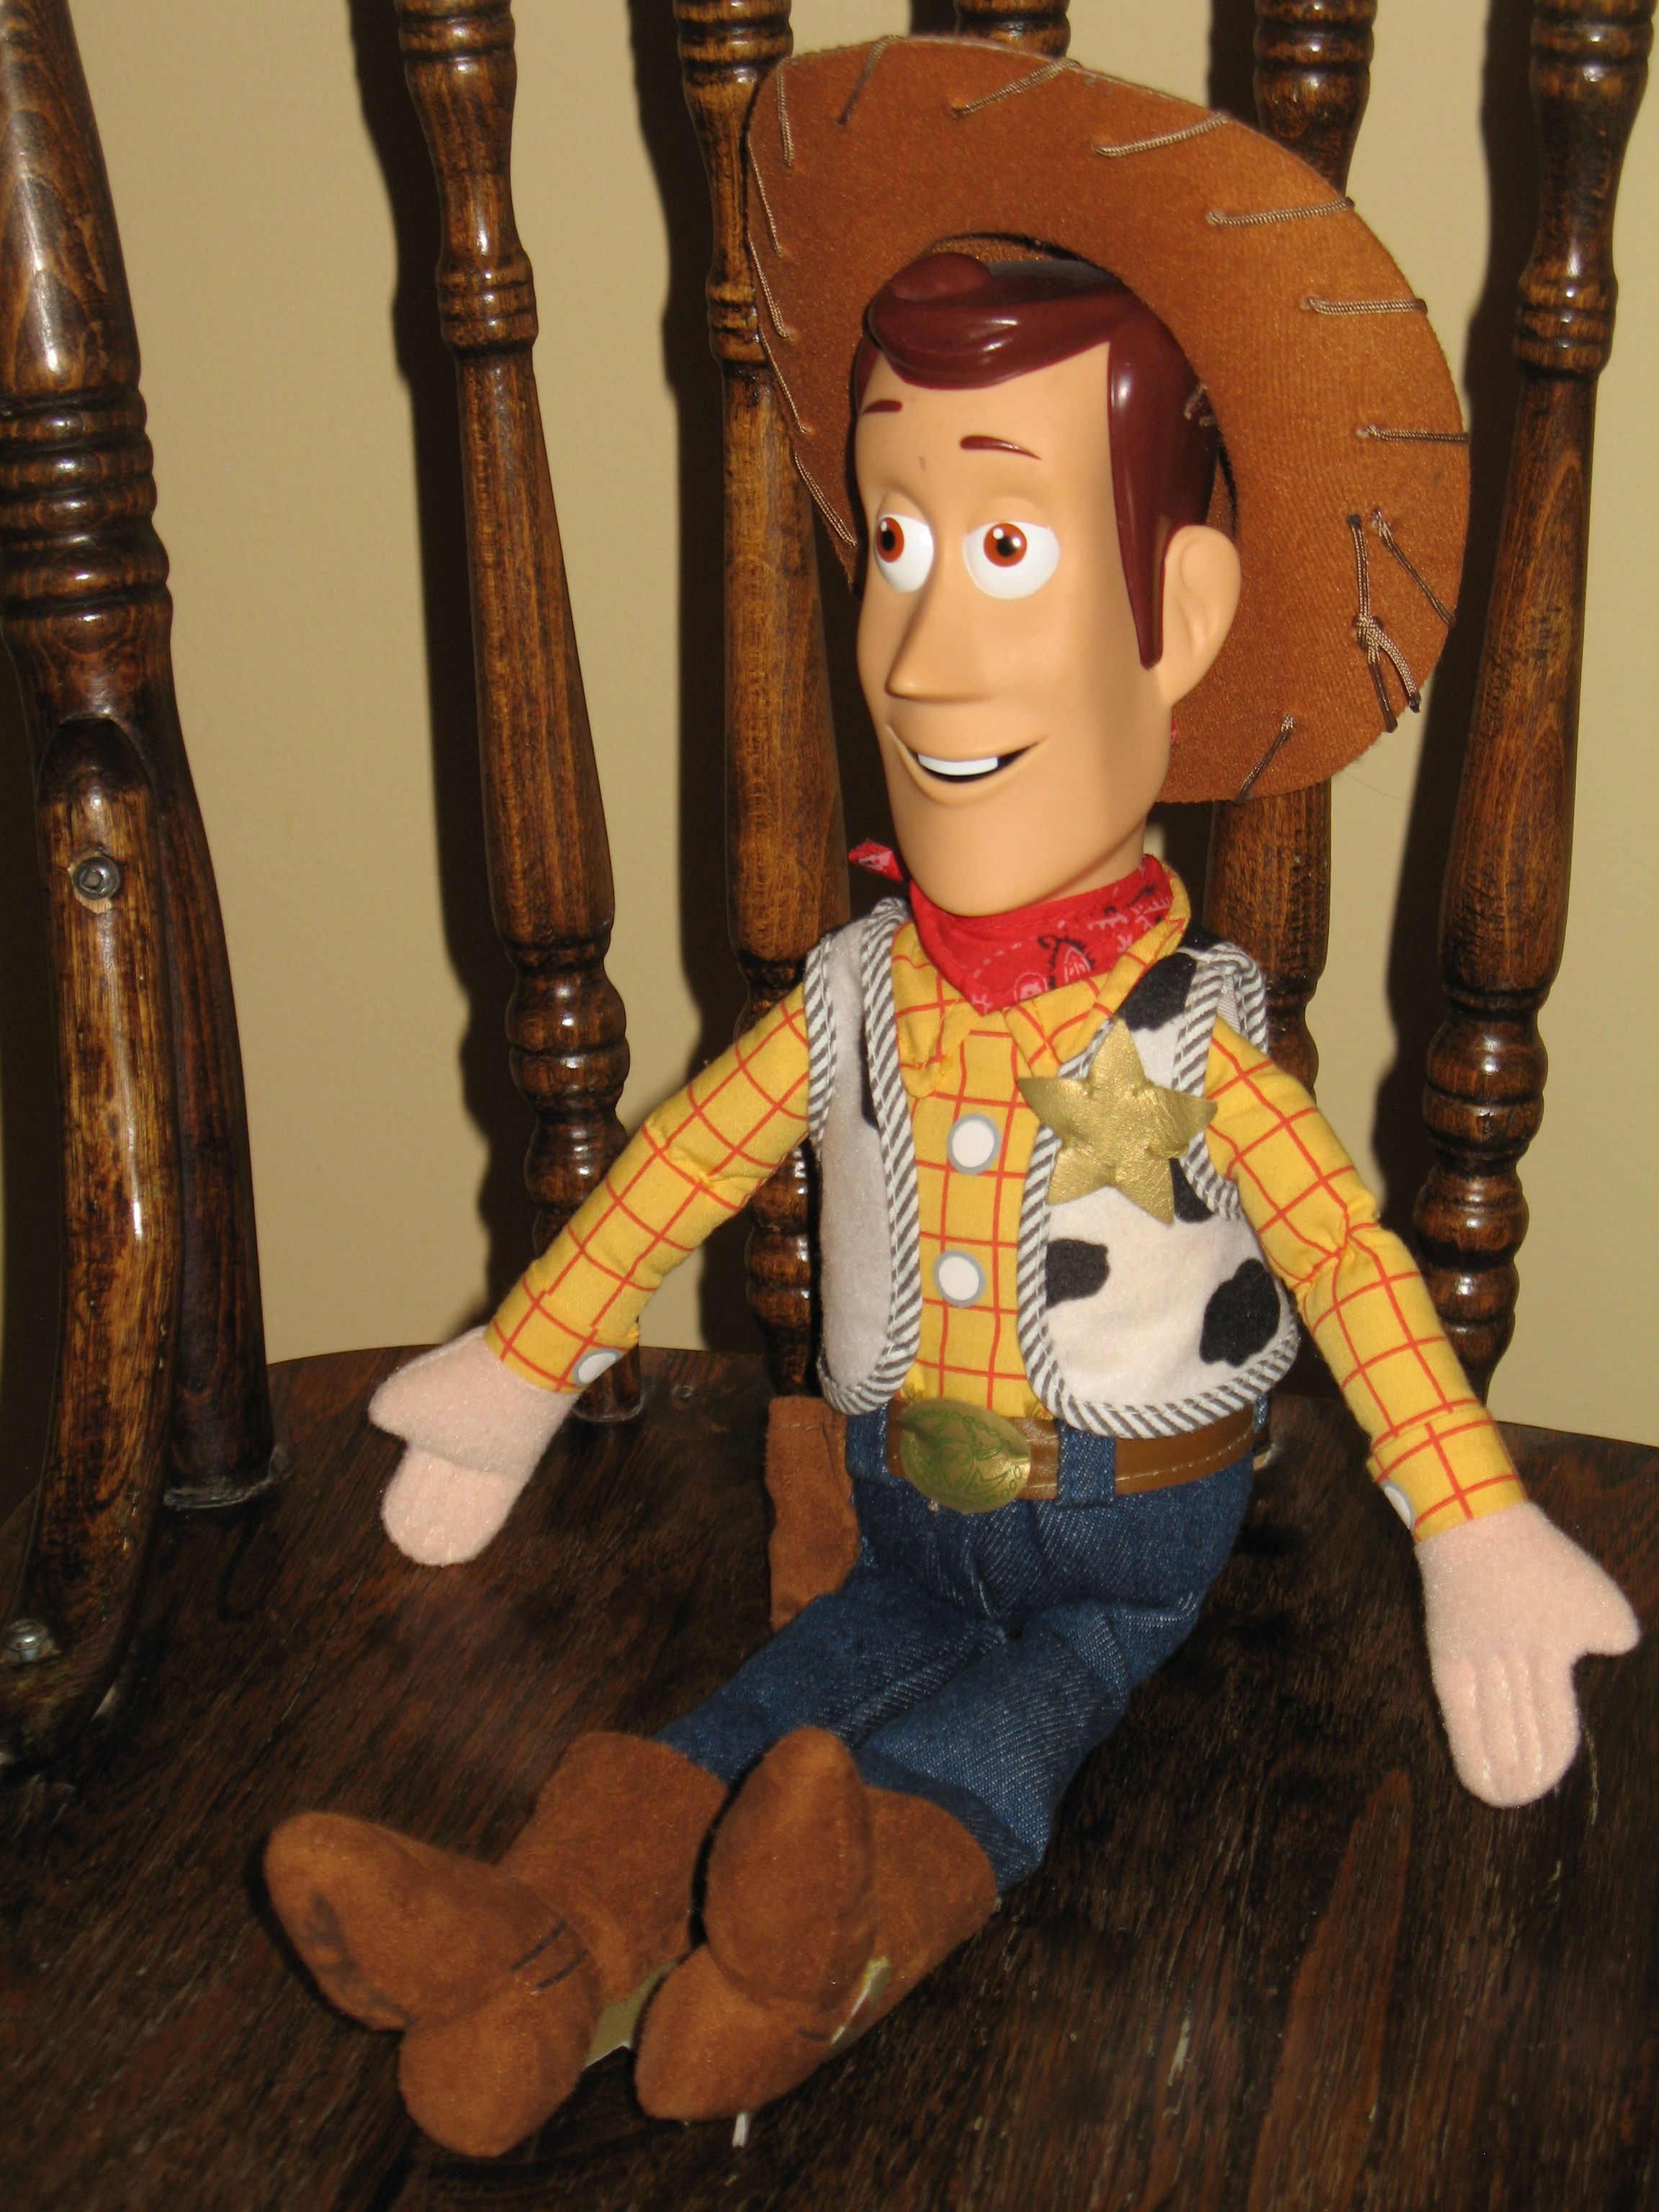 This Toy Story Woody The Cowboy Doll Is A Disney Store